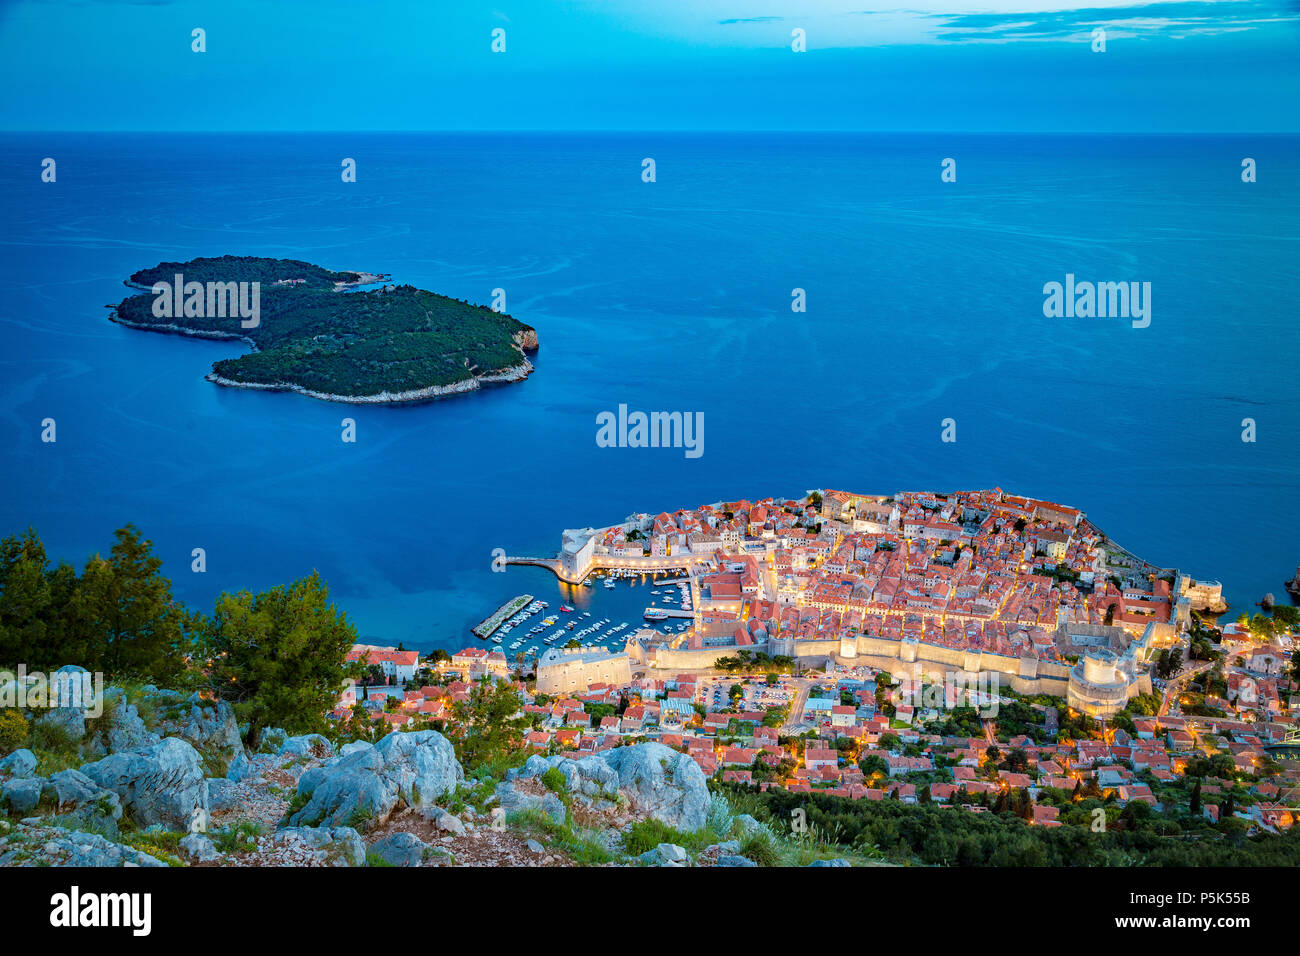 Panoramic aerial view of the historic town of Dubrovnik with Lokrum island in beautiful evening twilight at dusk, Dalmatia, Croatia - Stock Image